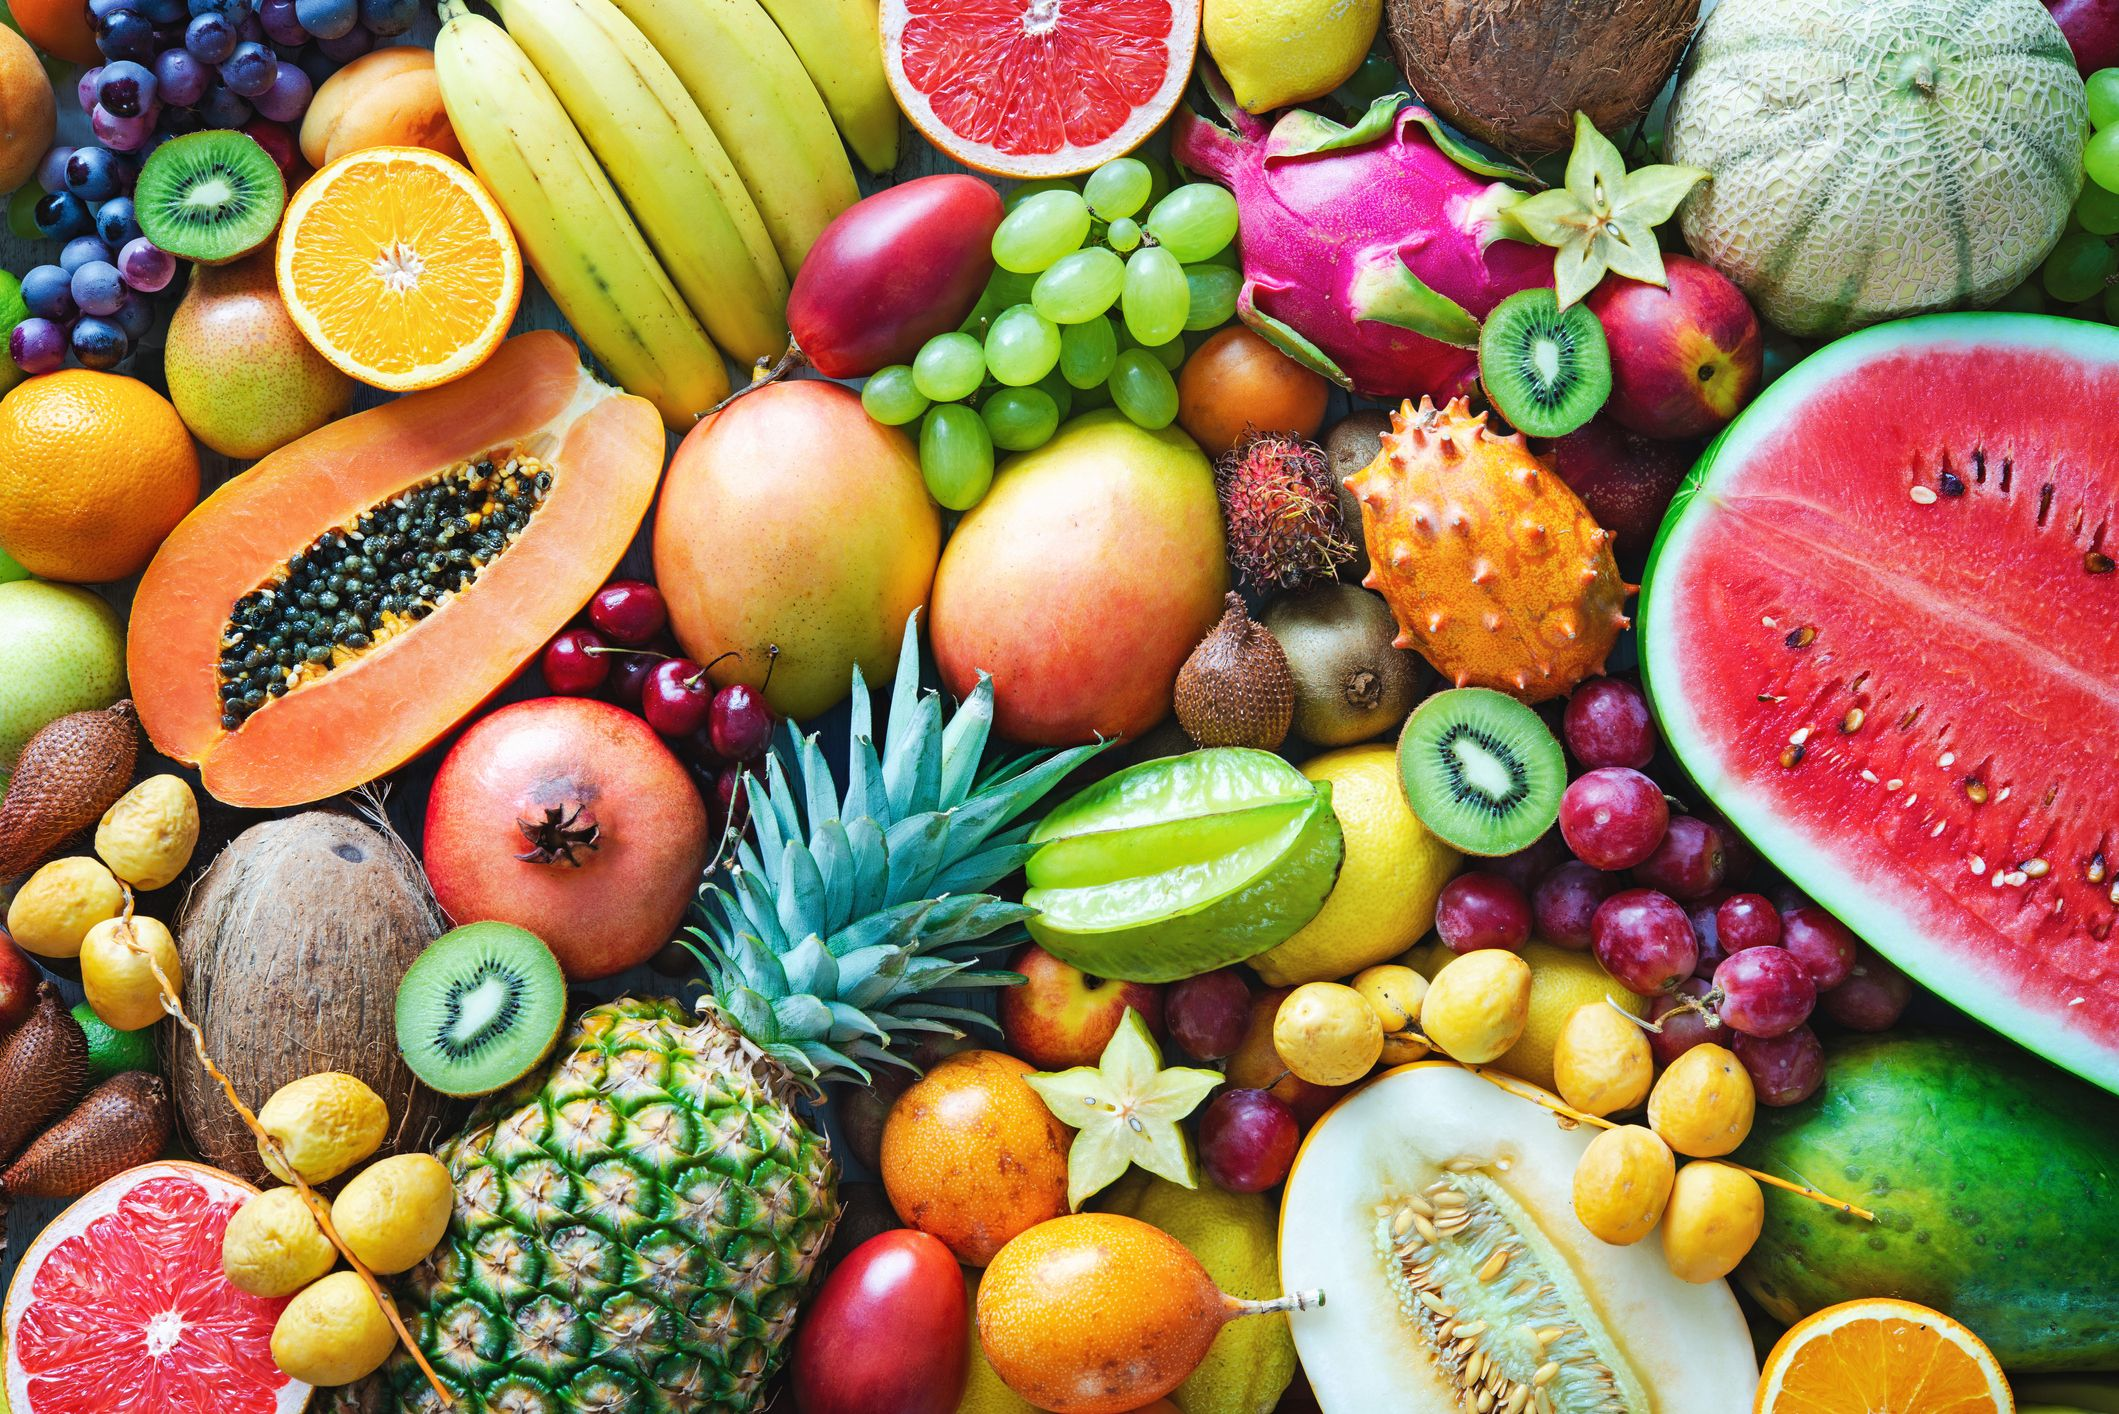 Top 20 Fruits and Vegetables Sold in the U.S.